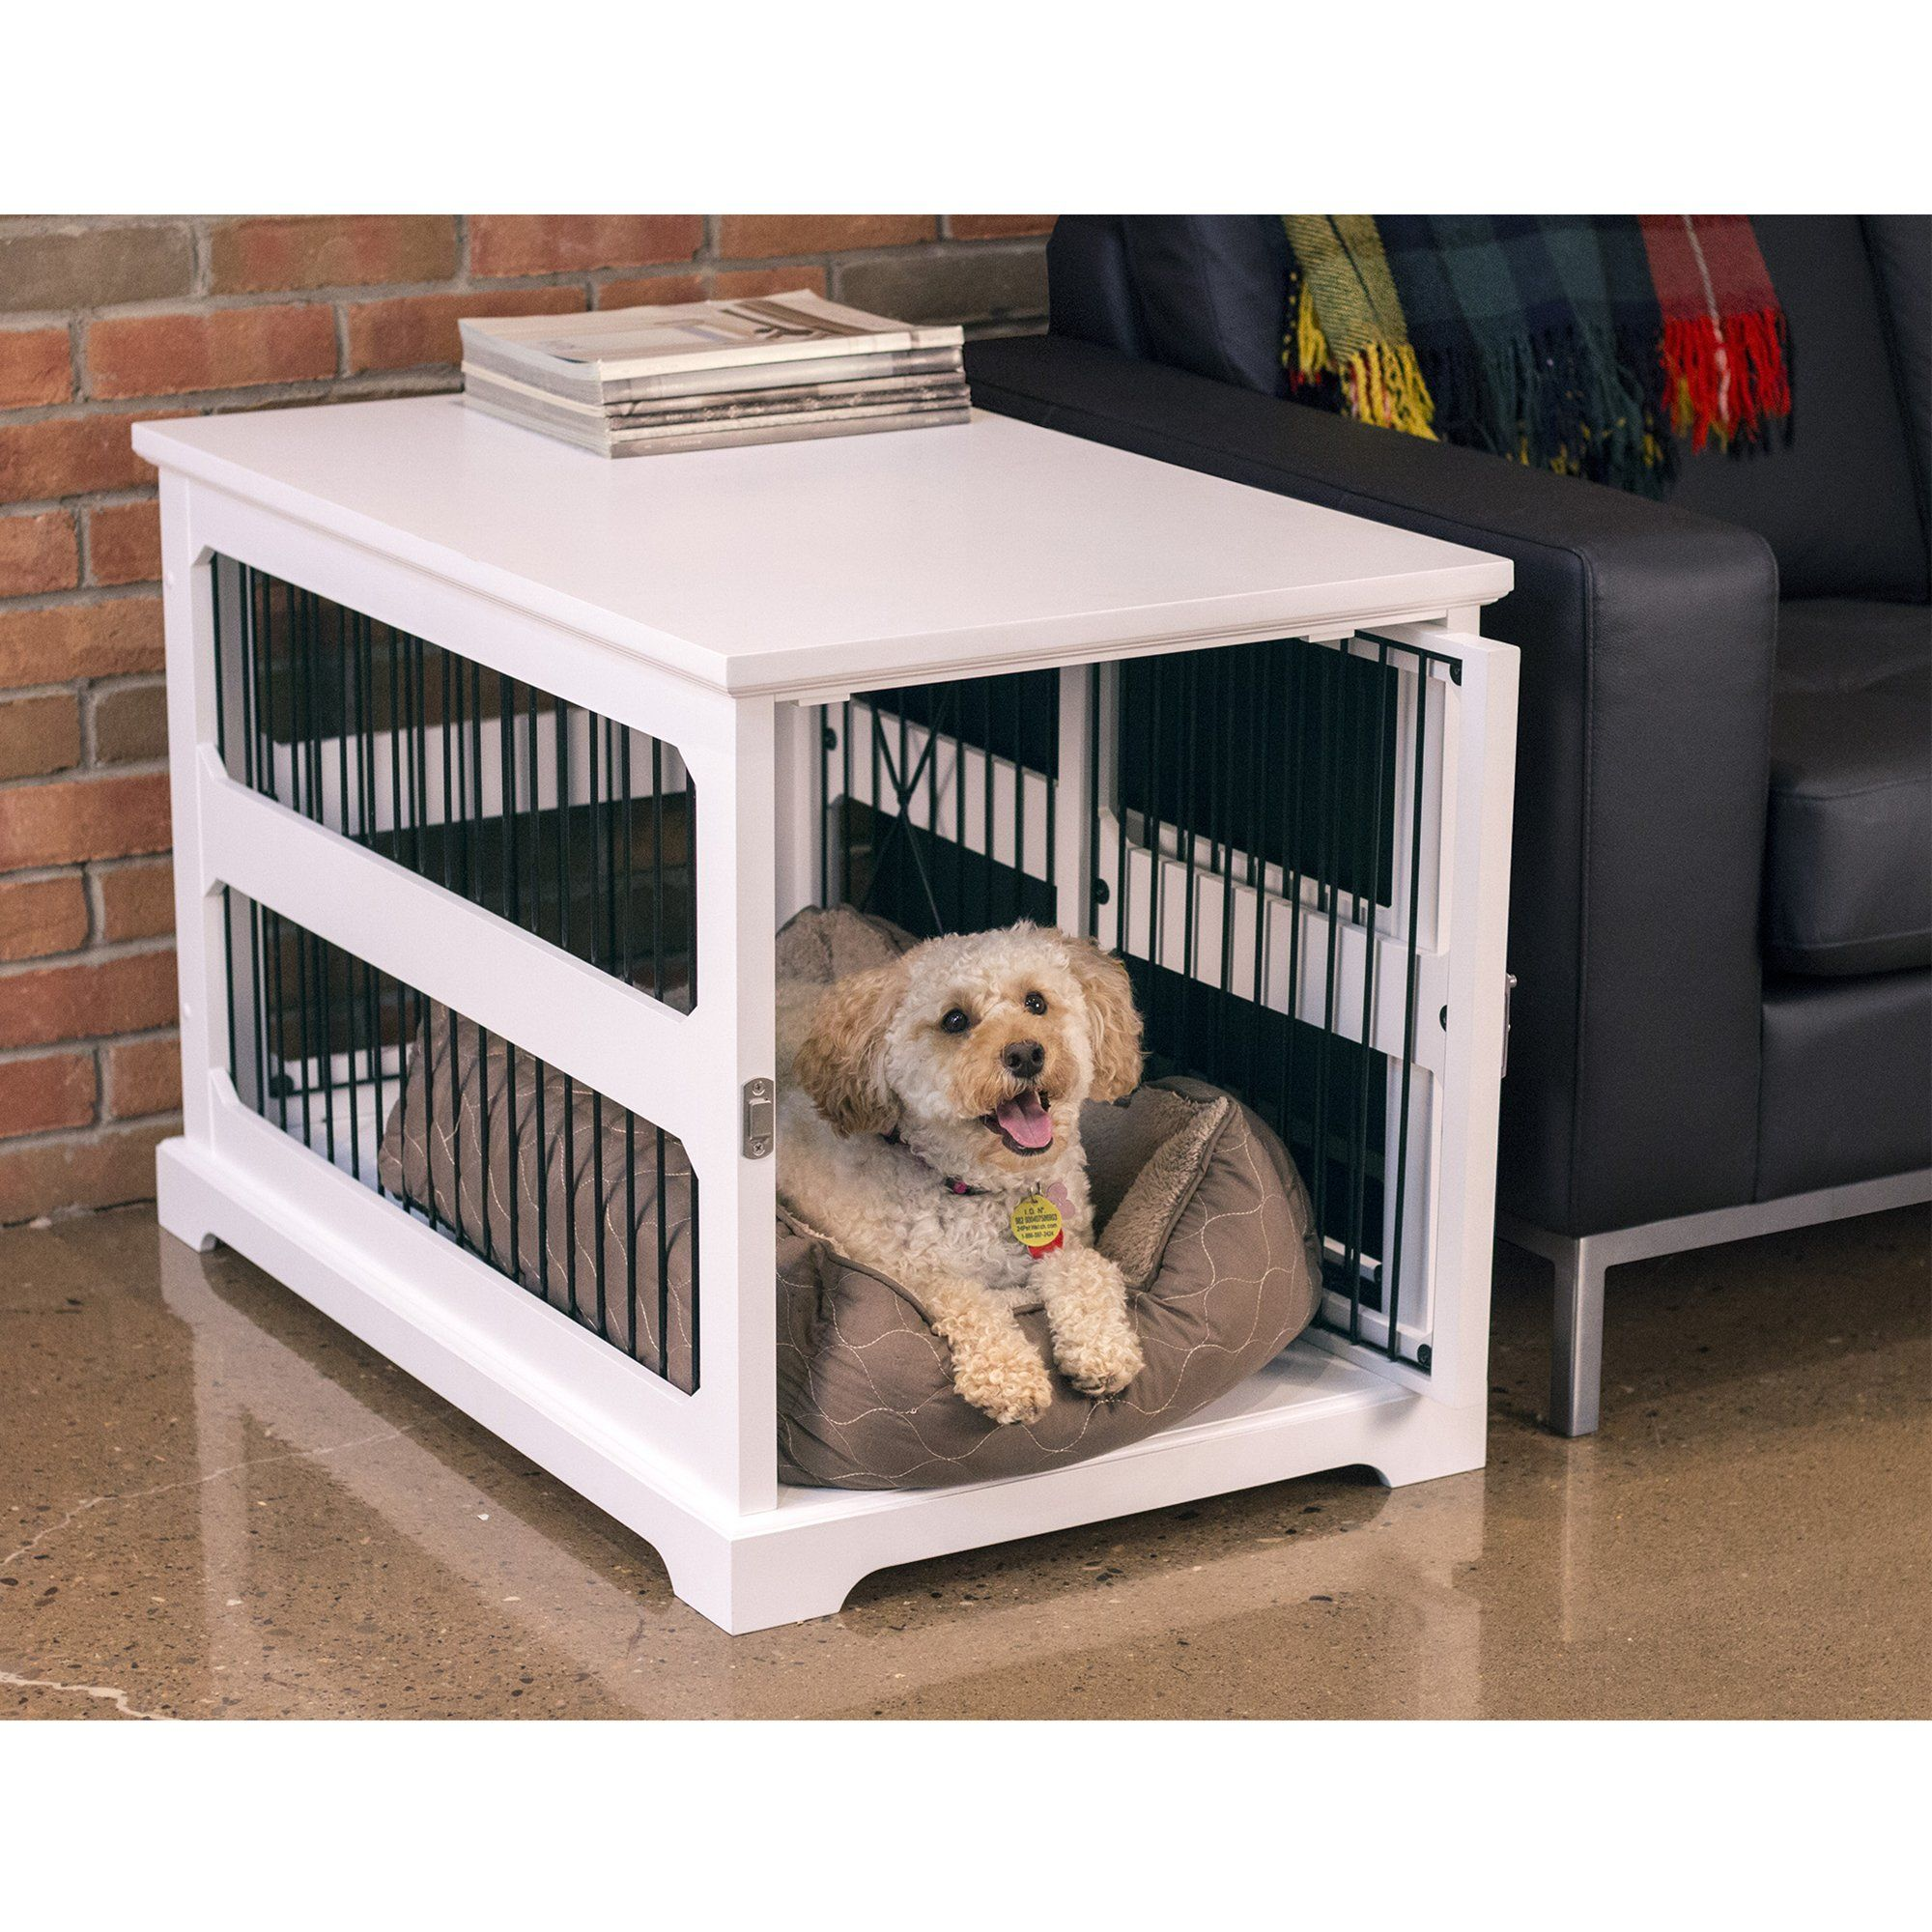 Zoovilla Slide Aside Crate And End Table In White 35 43 Dog Crate End Table Dog Furniture Pet Crate